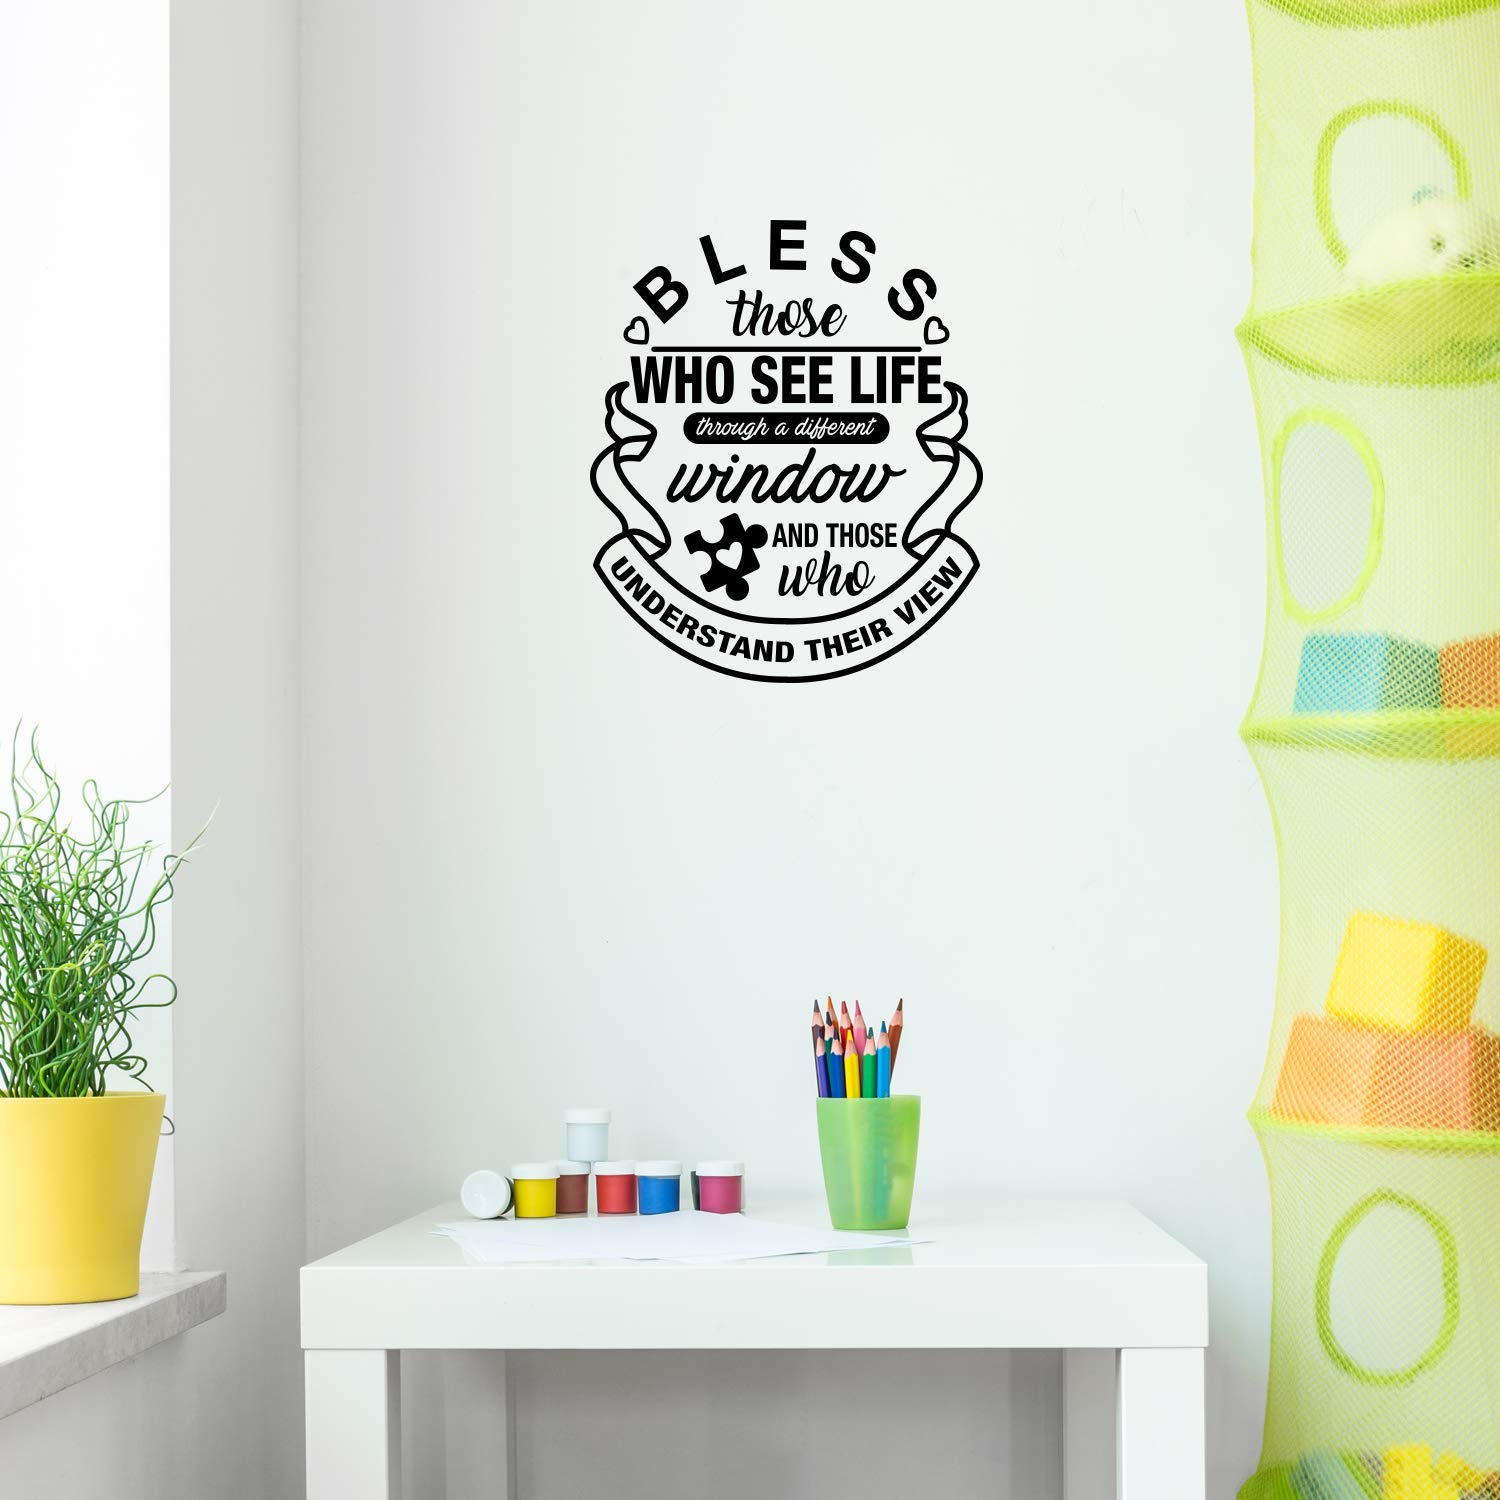 """Vinyl Wall Art Decal - Bless Those Who See Life Through A Different Window - 20"""" x 17"""" - Modern Thinking Autism Quote for Home Bedroom Classroom School Workplace Indoor Decoration"""